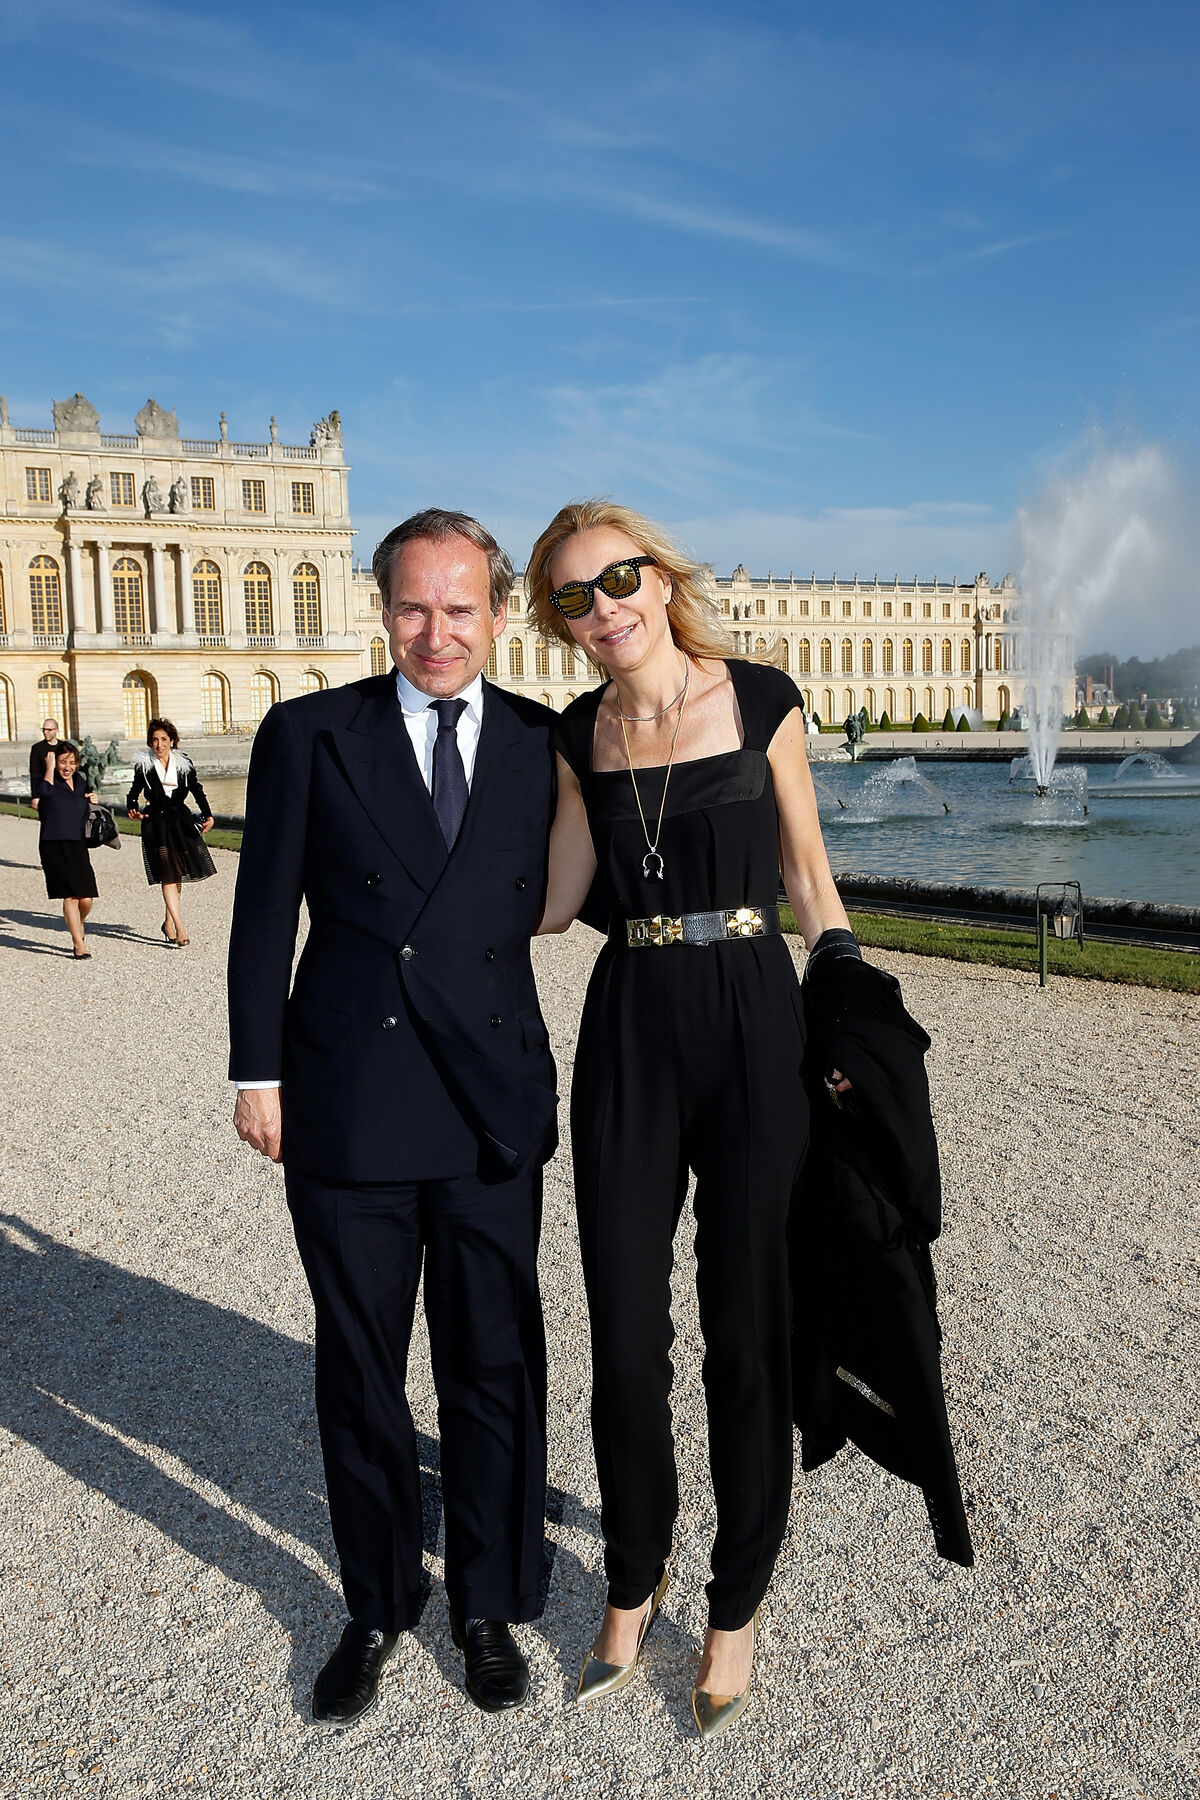 Photo of Simon and Michaela de Pury at Versailles by Rindoff/Charriau, courtesy of Getty Images.